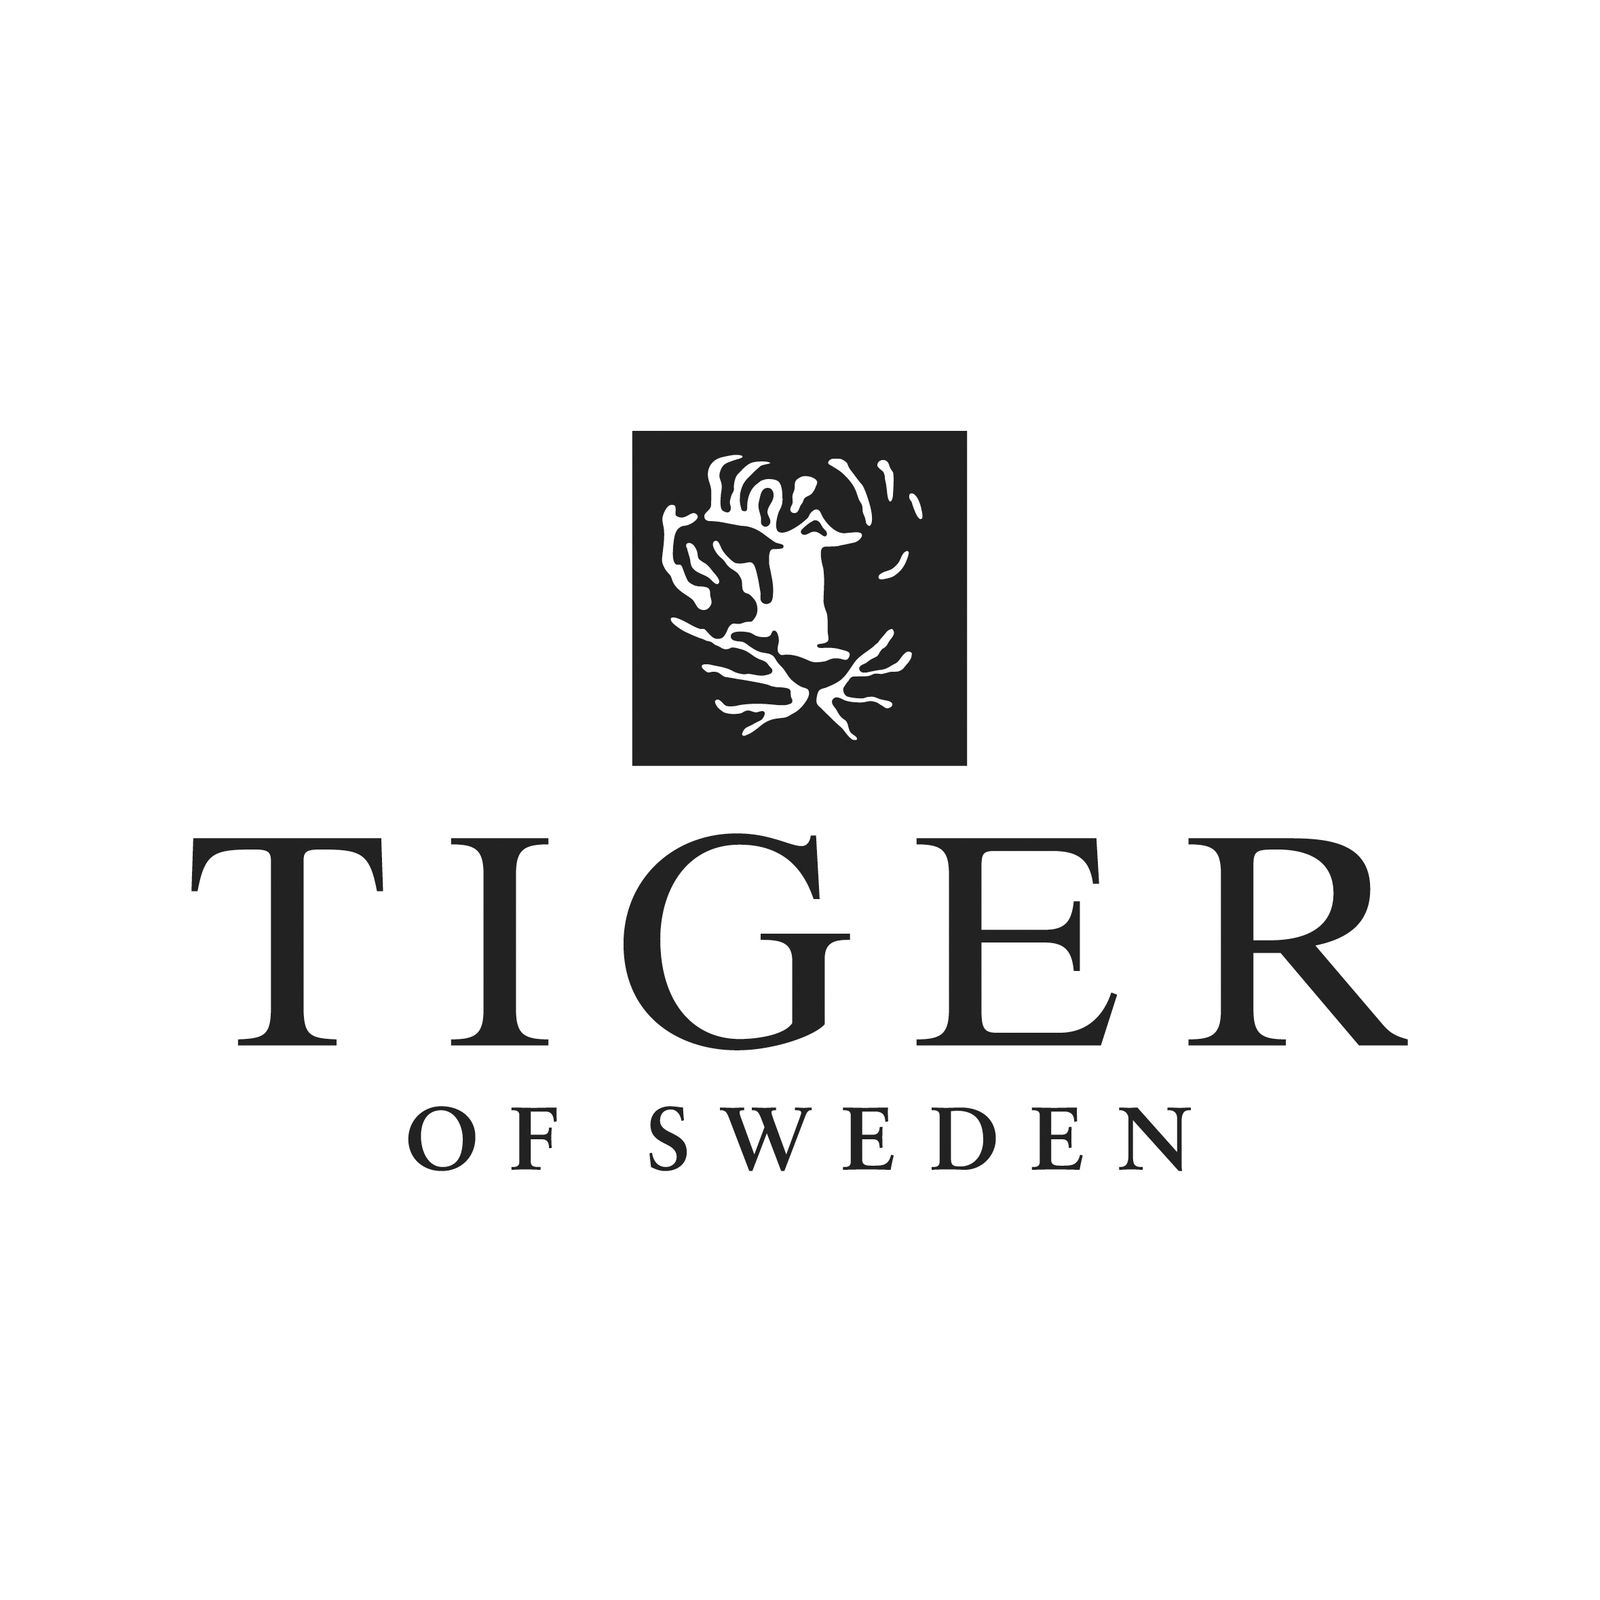 TIGER OF SWEDEN (Bild 1)